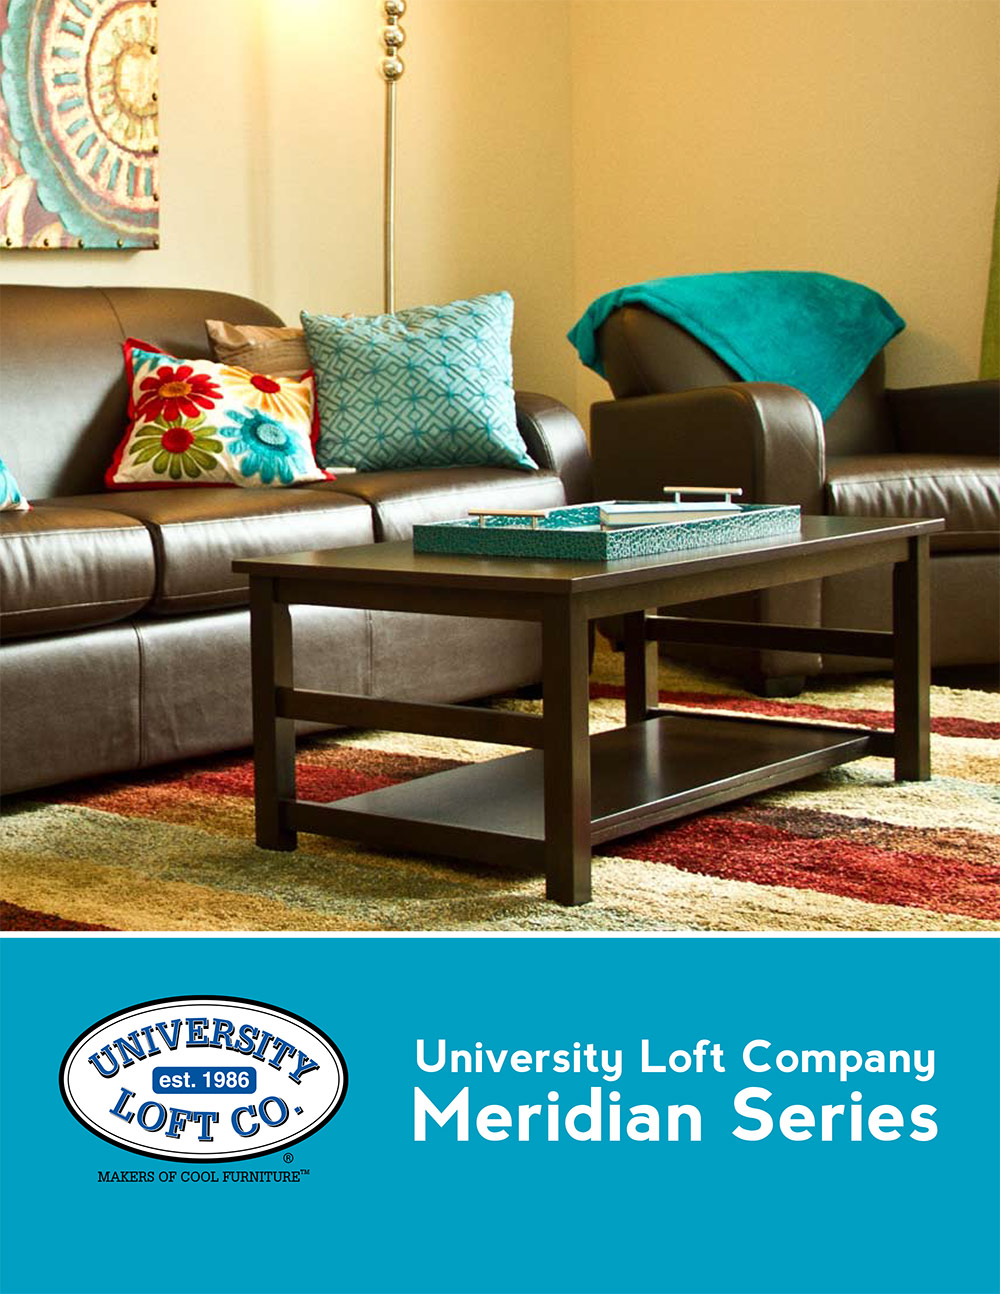 Meridian Series Brochure